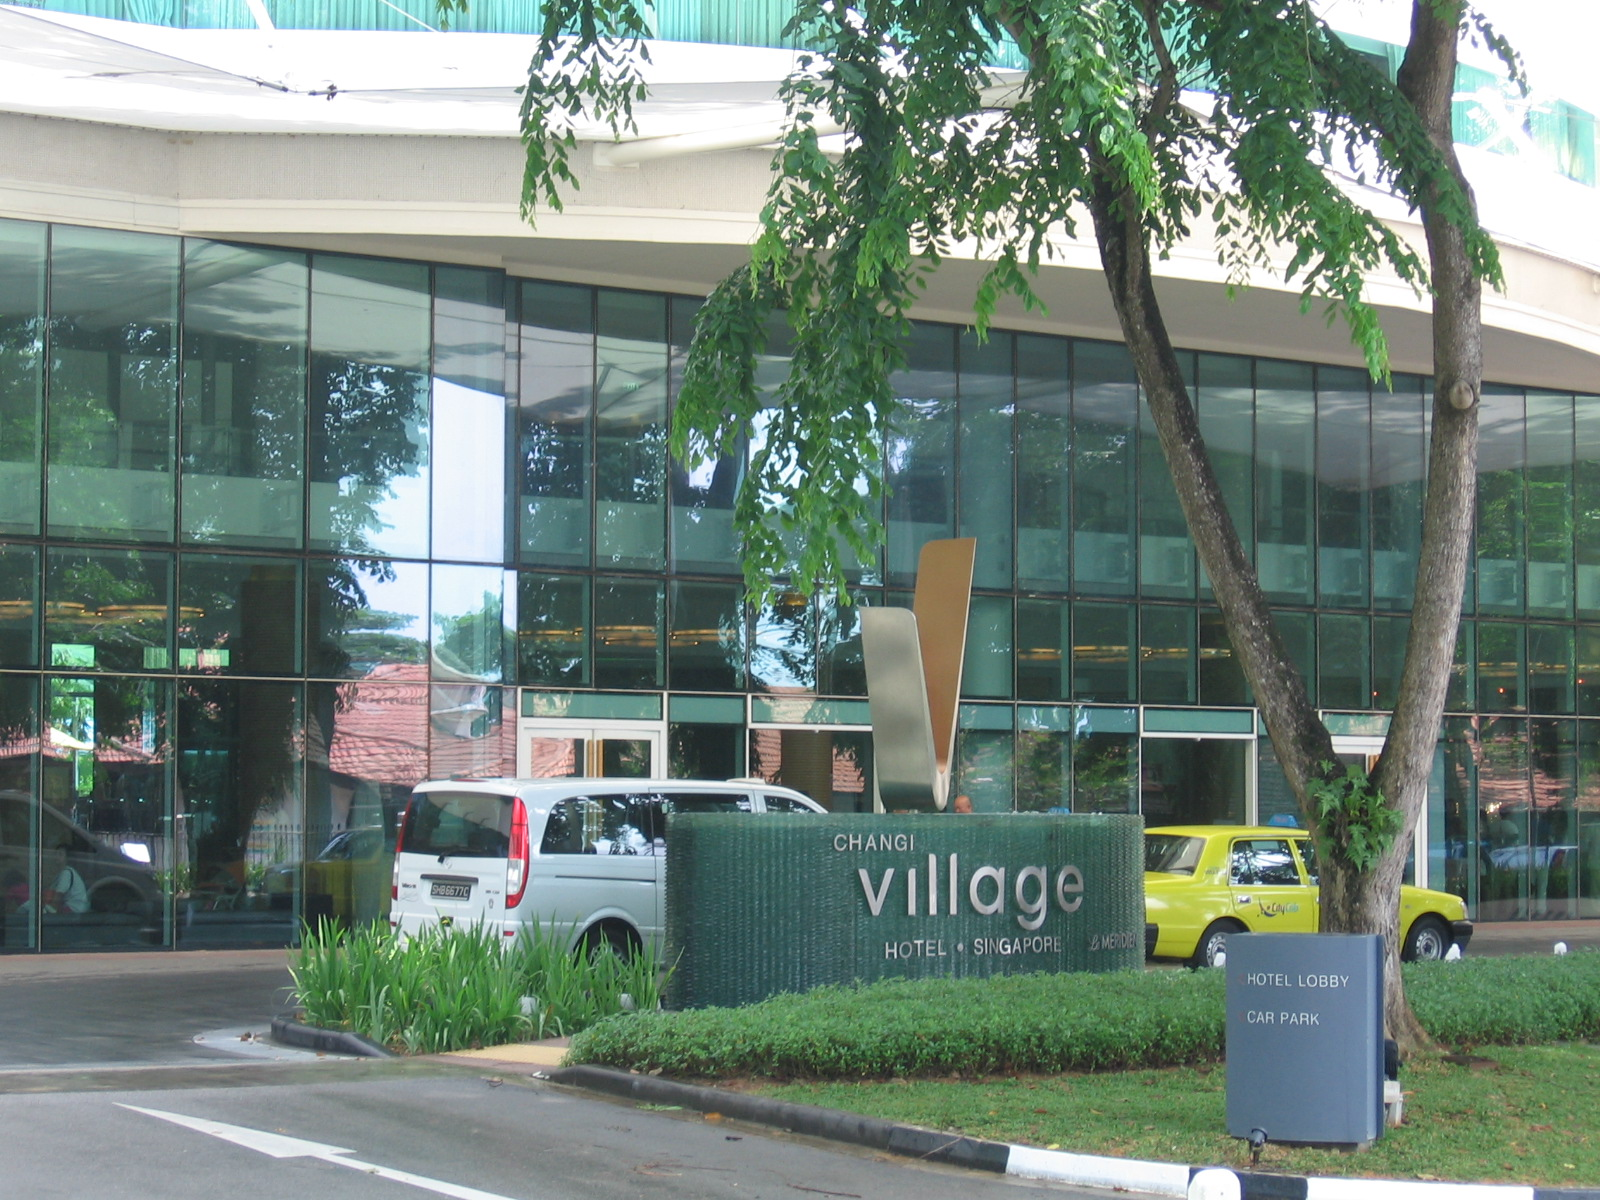 Changi_Village_Hotel_2,_Jul_06